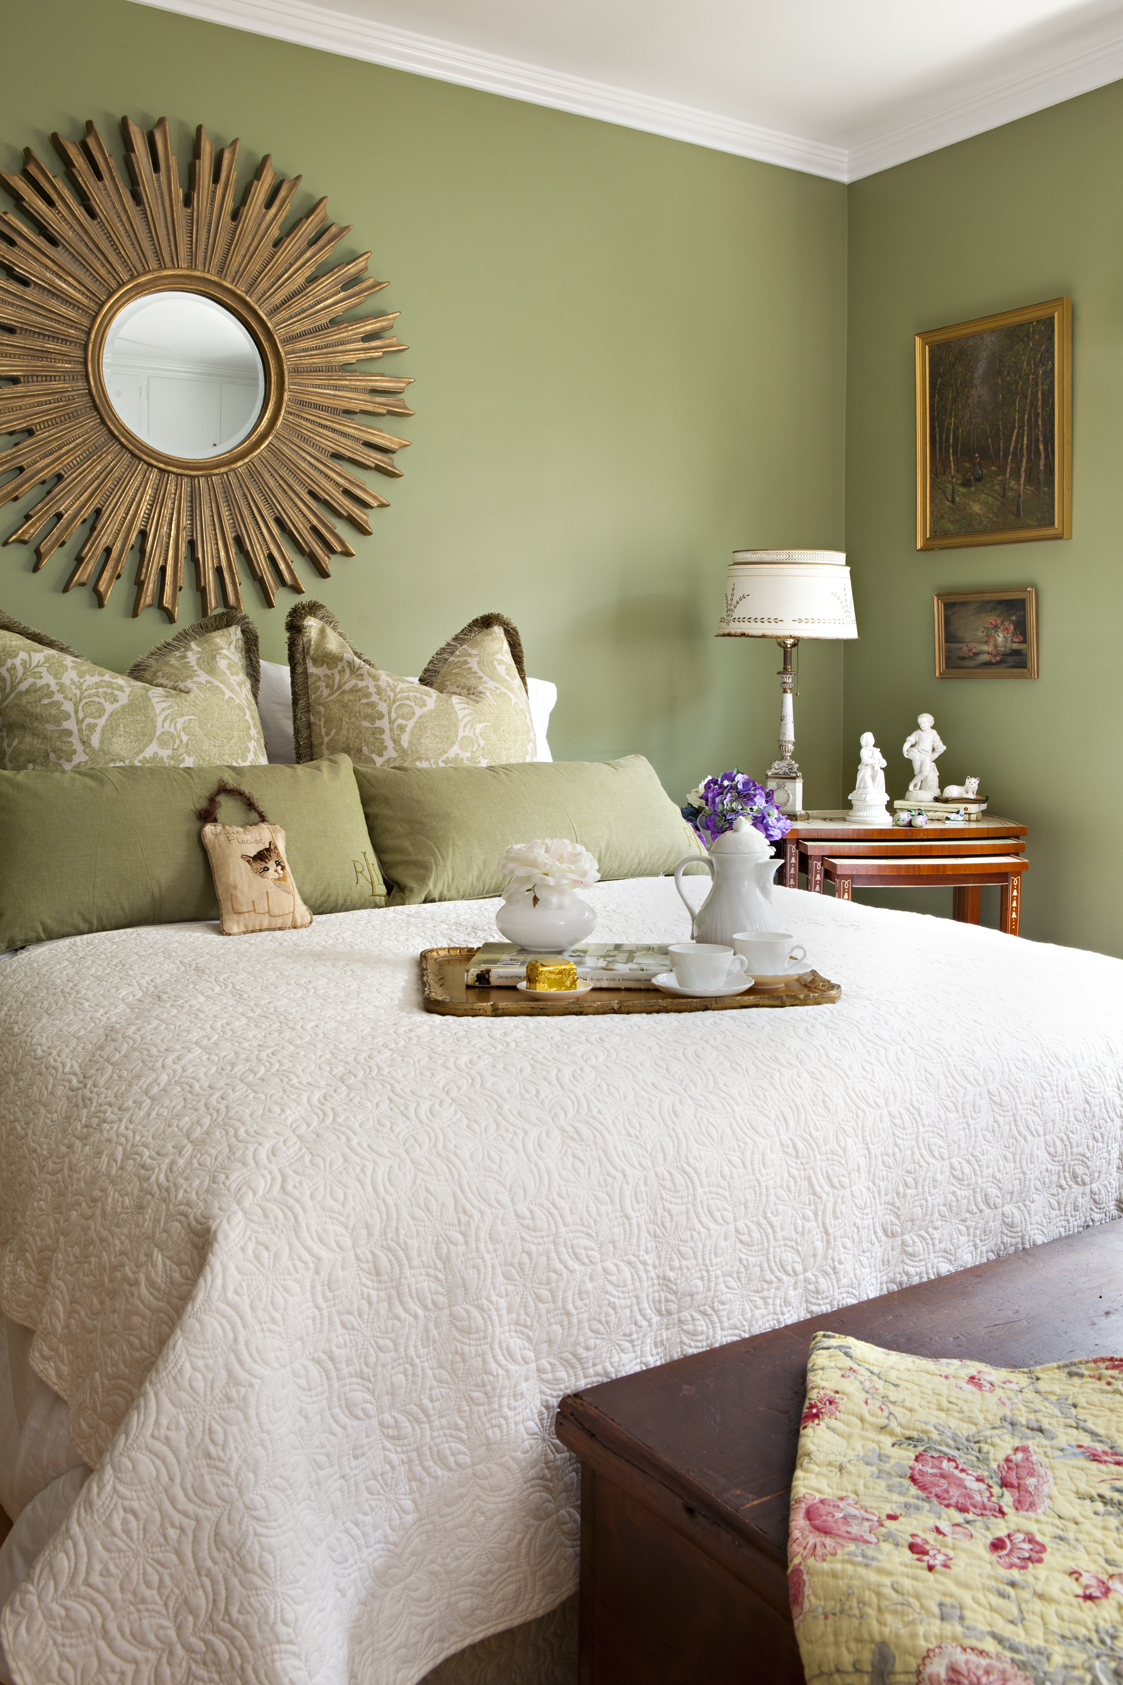 3 ways to welcome spring into your bedroom decor Decor bedroom